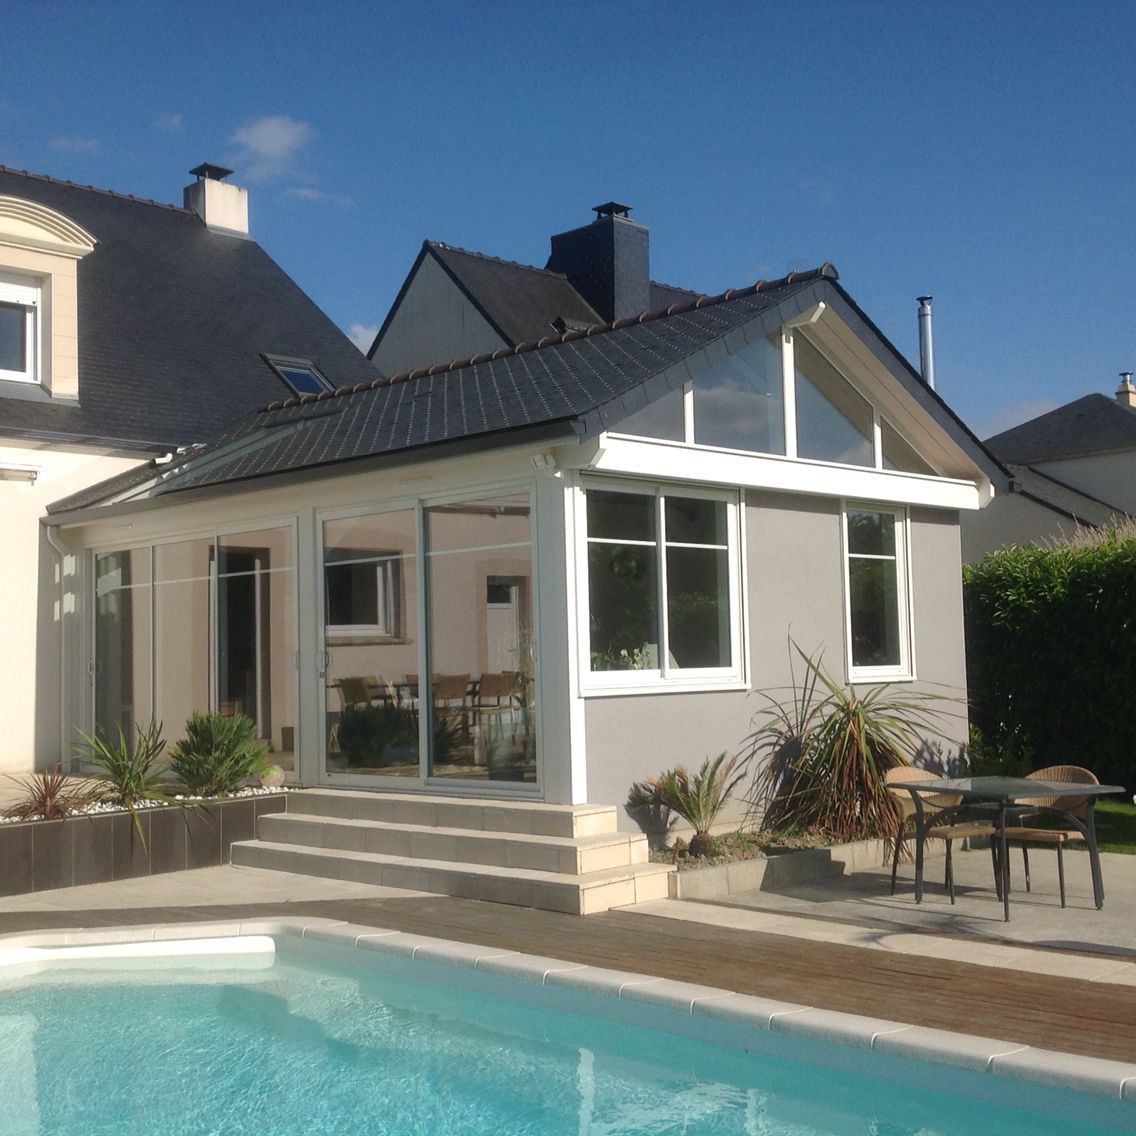 Extension devant la piscine construction mixte bois for Extension parpaing